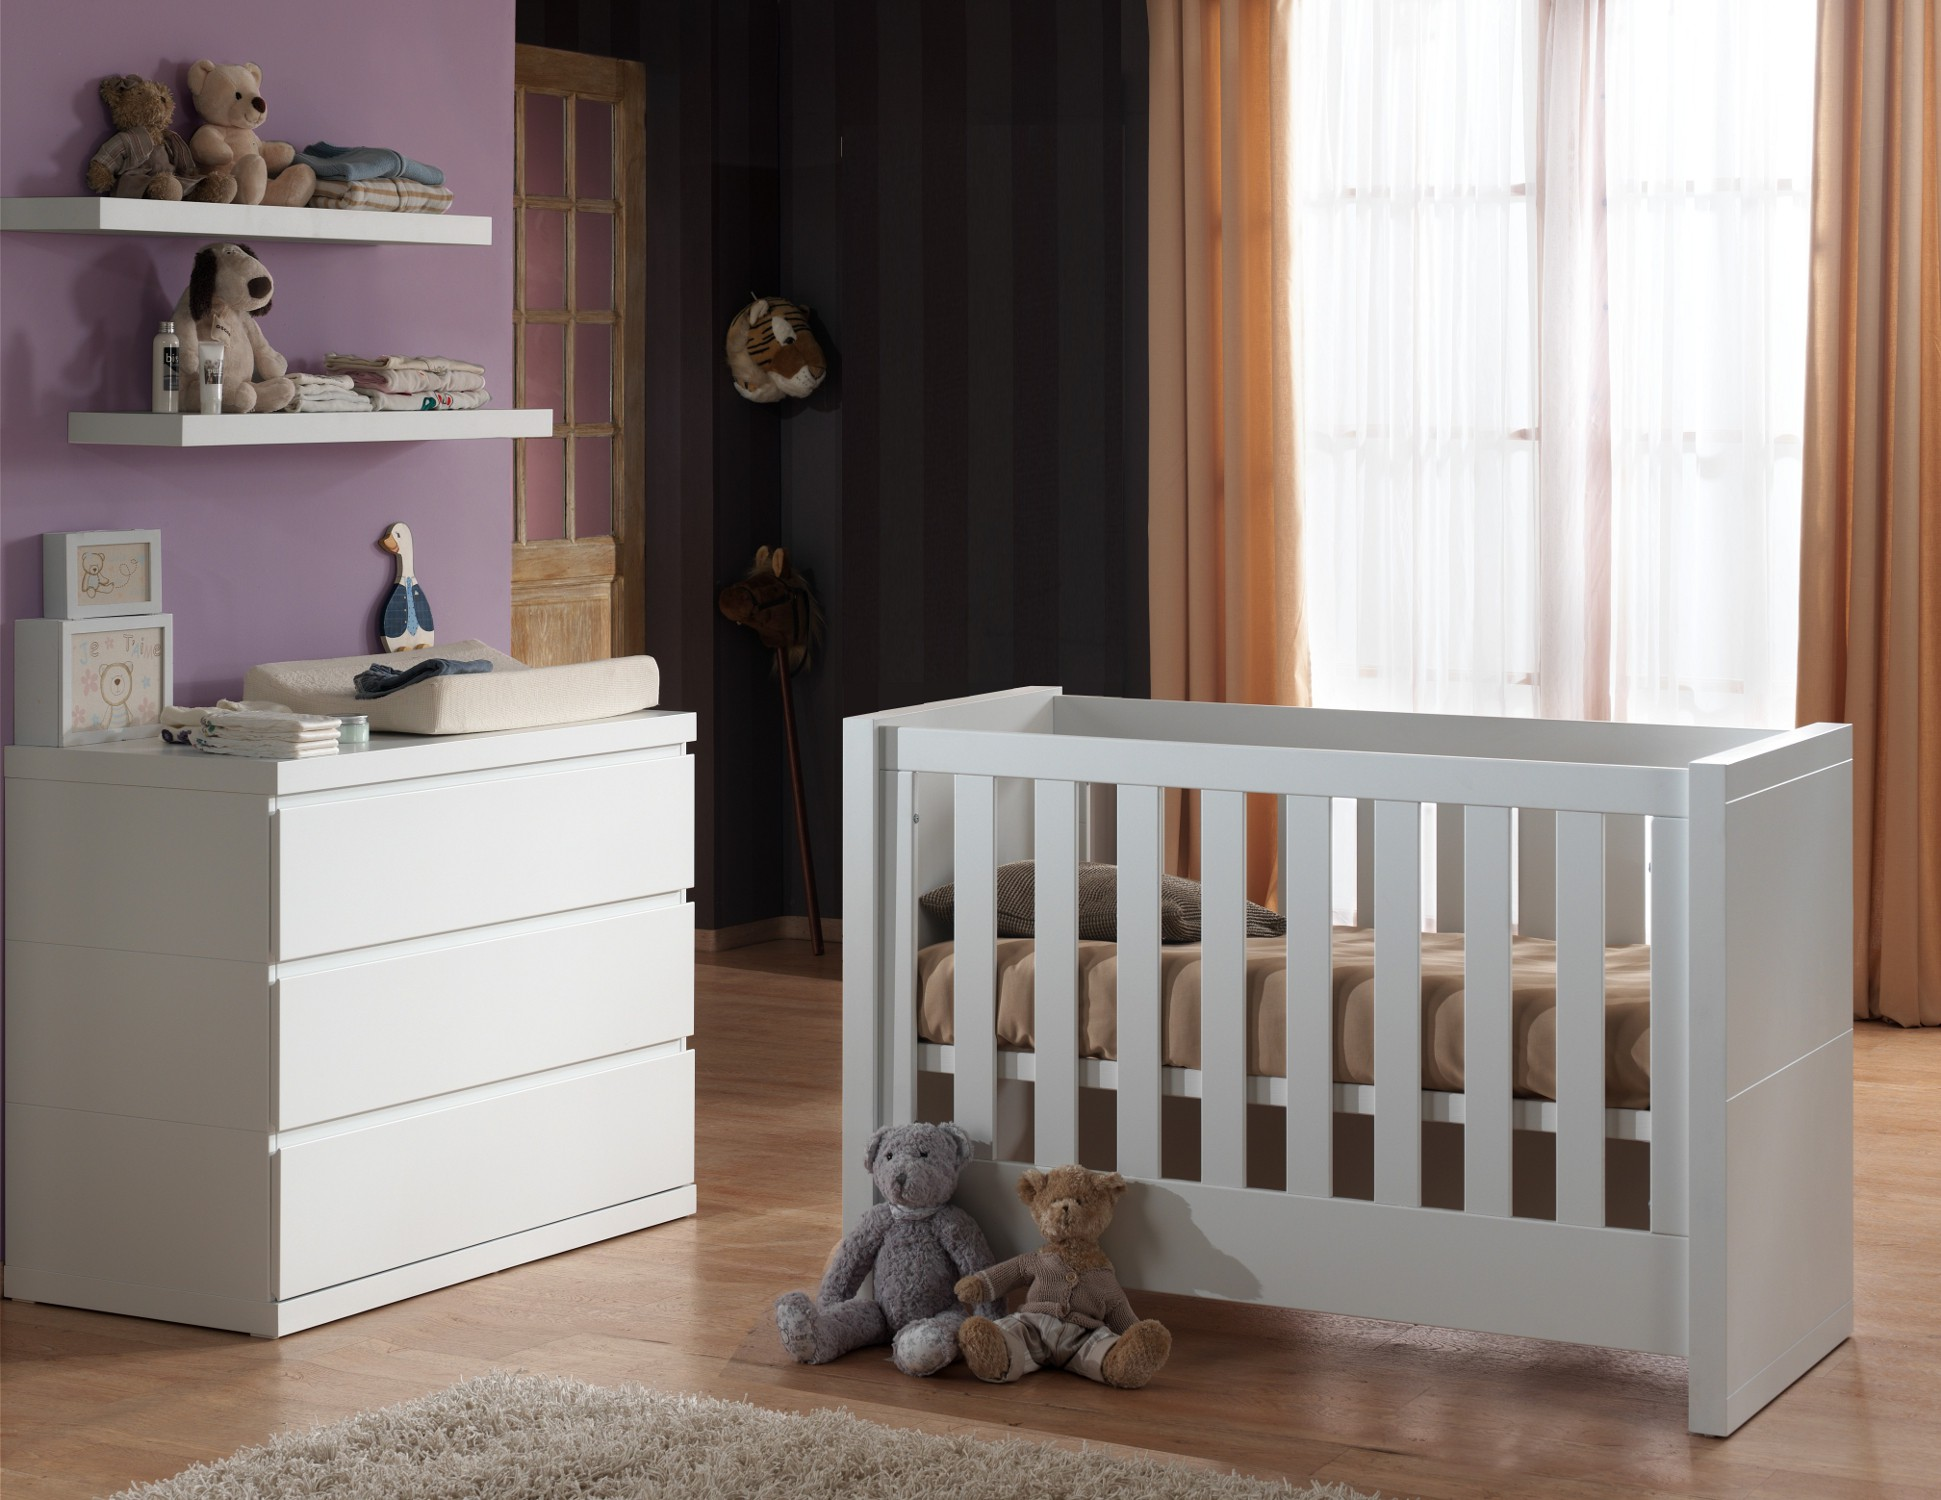 babyzimmer lara set mit babybett regale kommode wickelauflage weiss ebay. Black Bedroom Furniture Sets. Home Design Ideas